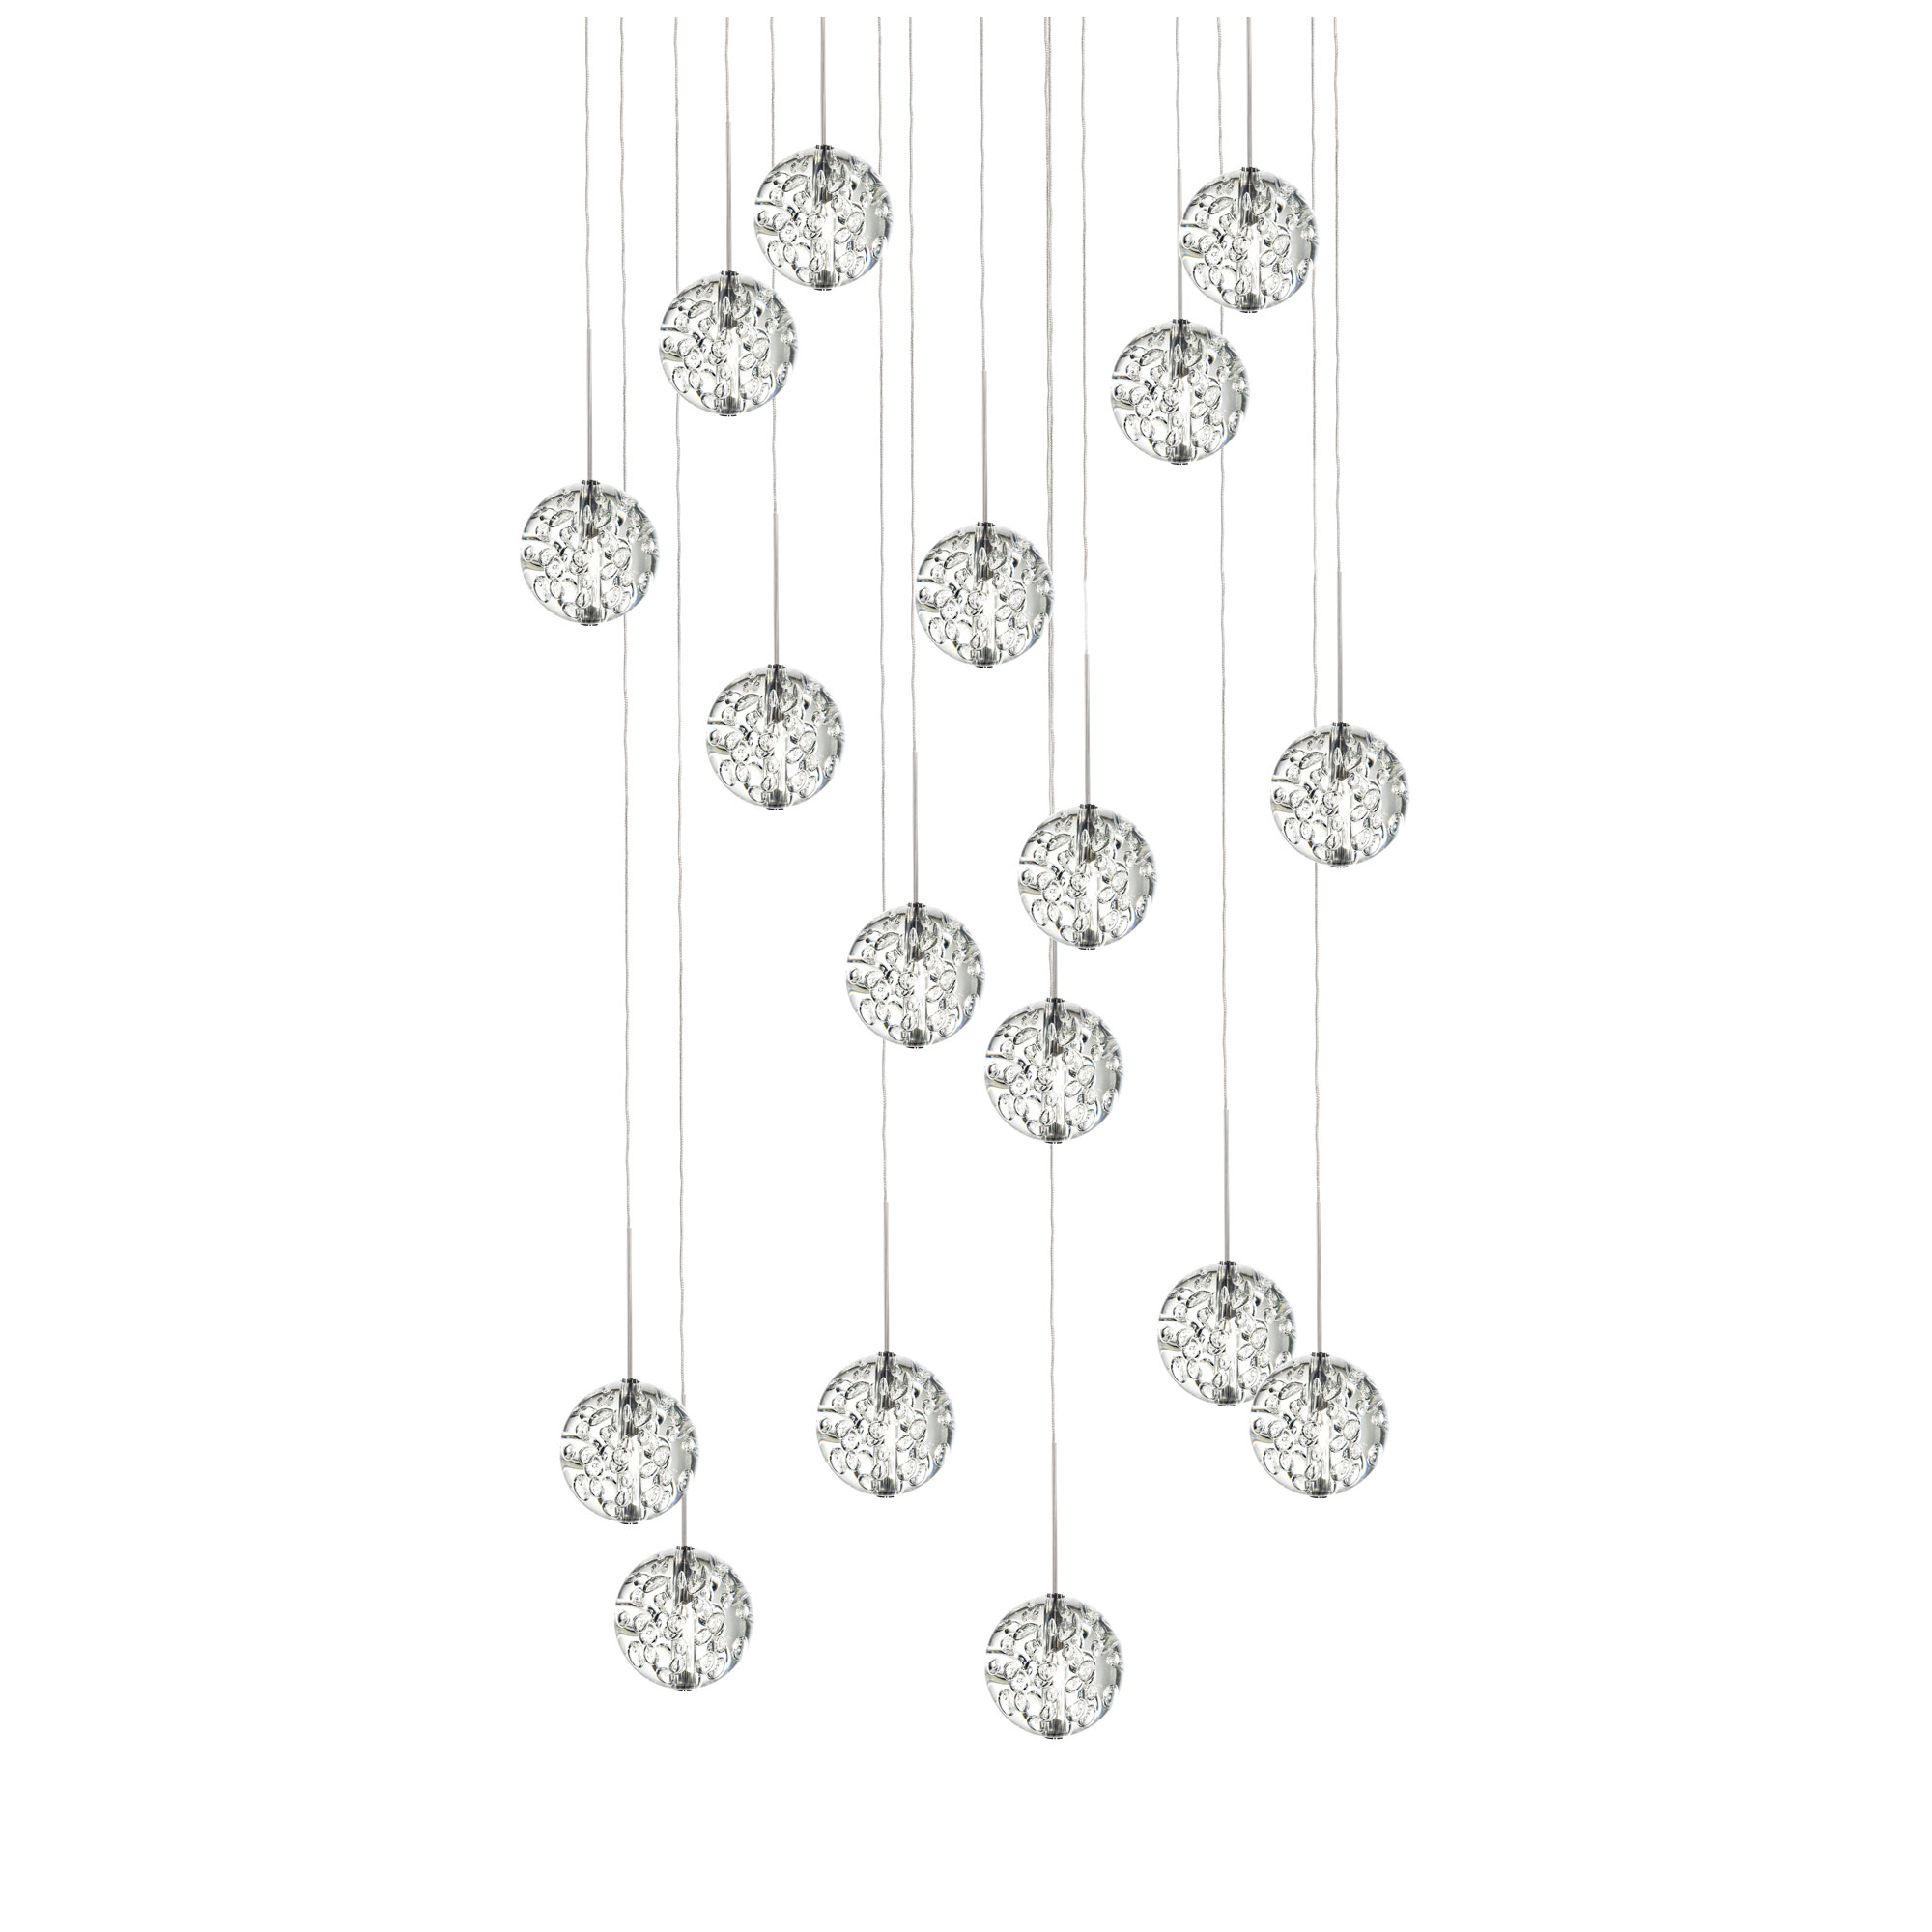 Bubble Ball 17 Light Round Led Pendant By Pureedge